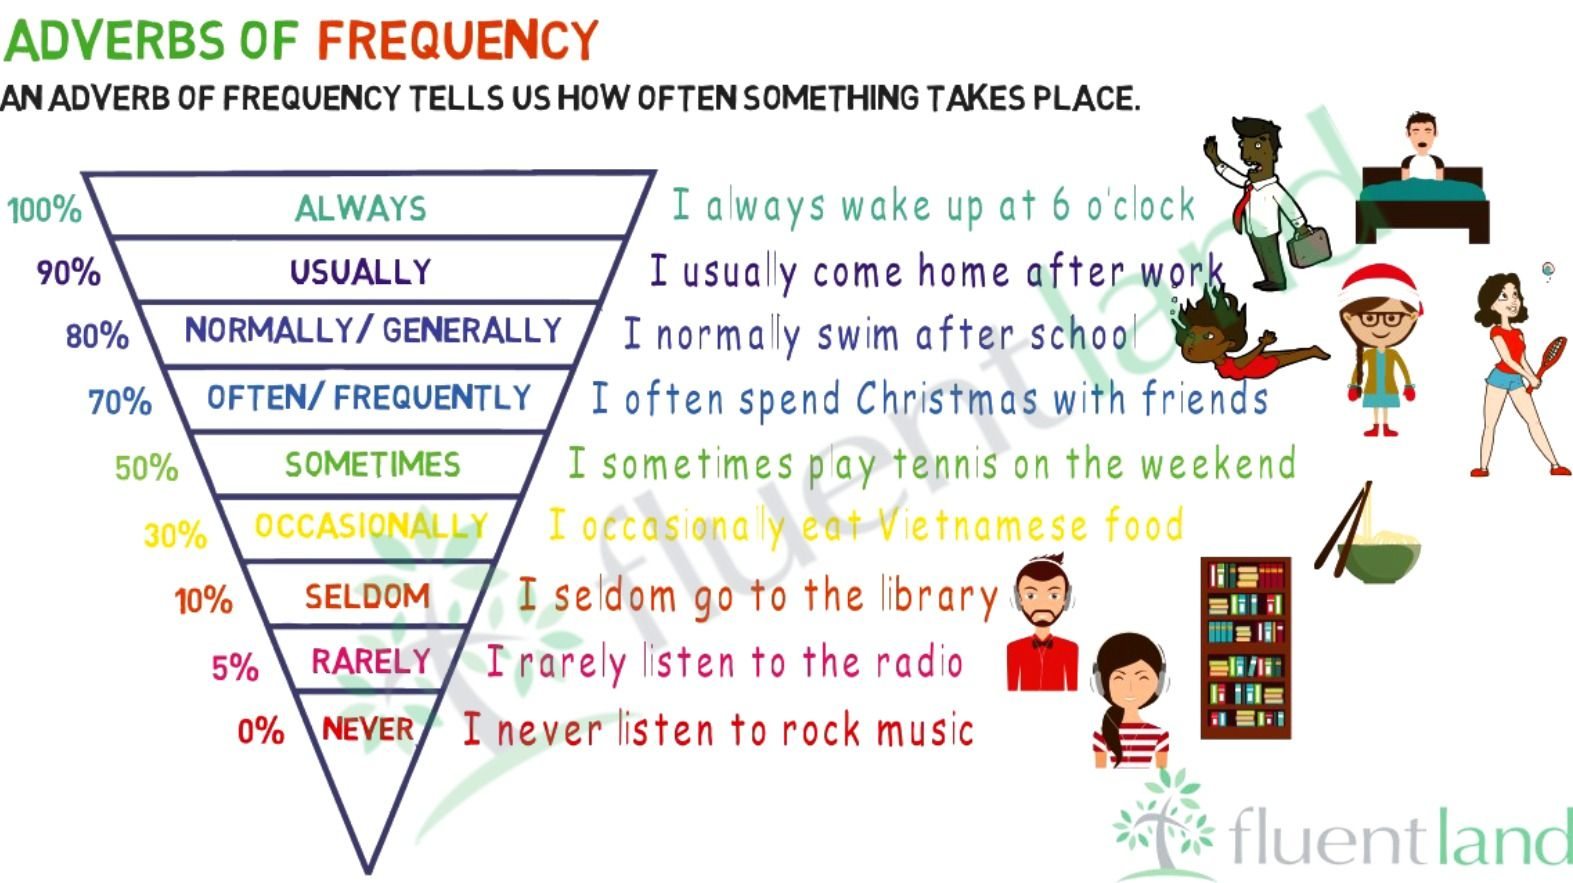 Adverbs Of Frequency List Of Adverbs Of Frequency With